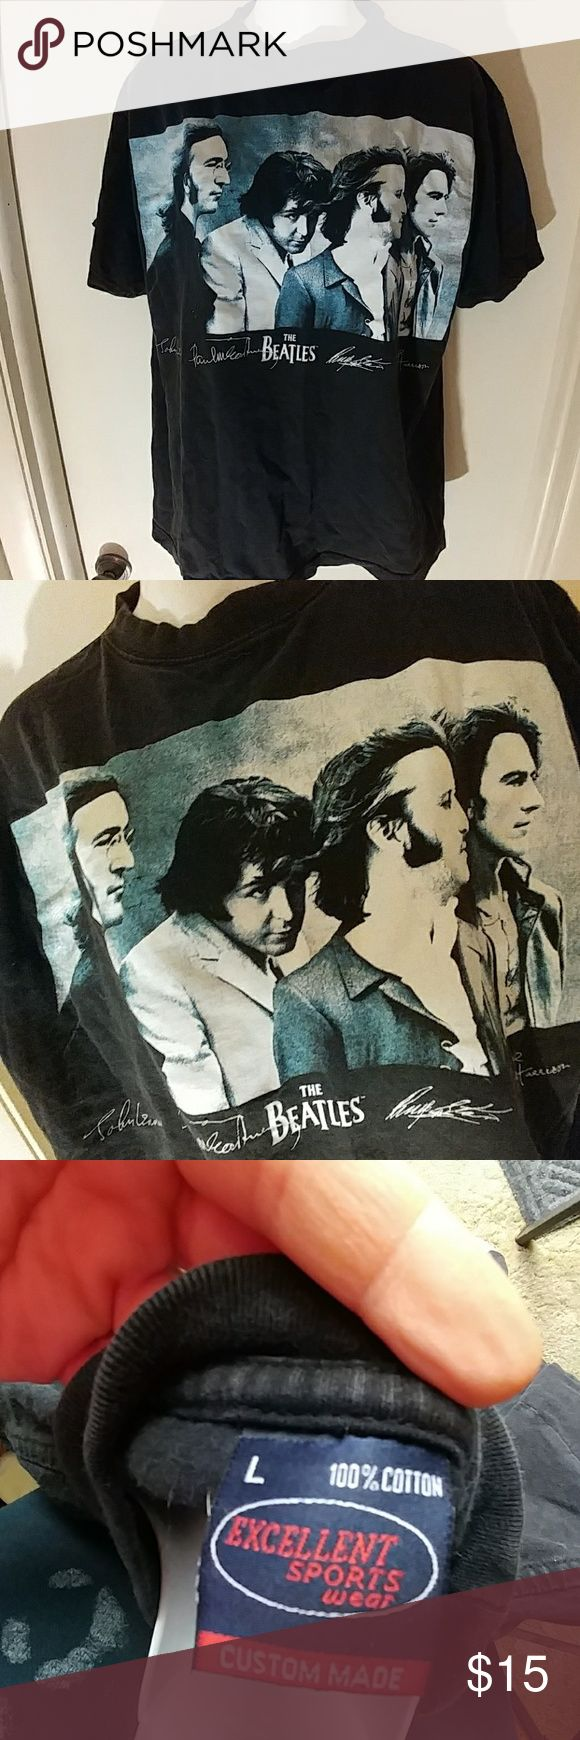 Men's L Beatles black T-shirt by Excellent Sports Very cool iron on of The Beatles on this t-shirt it is one of the best photos I've ever seen of them!  It is in very good condition it has a stone wash look to it and comes from a smoke-free home.  Excellent sportswear brand. excellent sports wear Shirts Tees - Short Sleeve